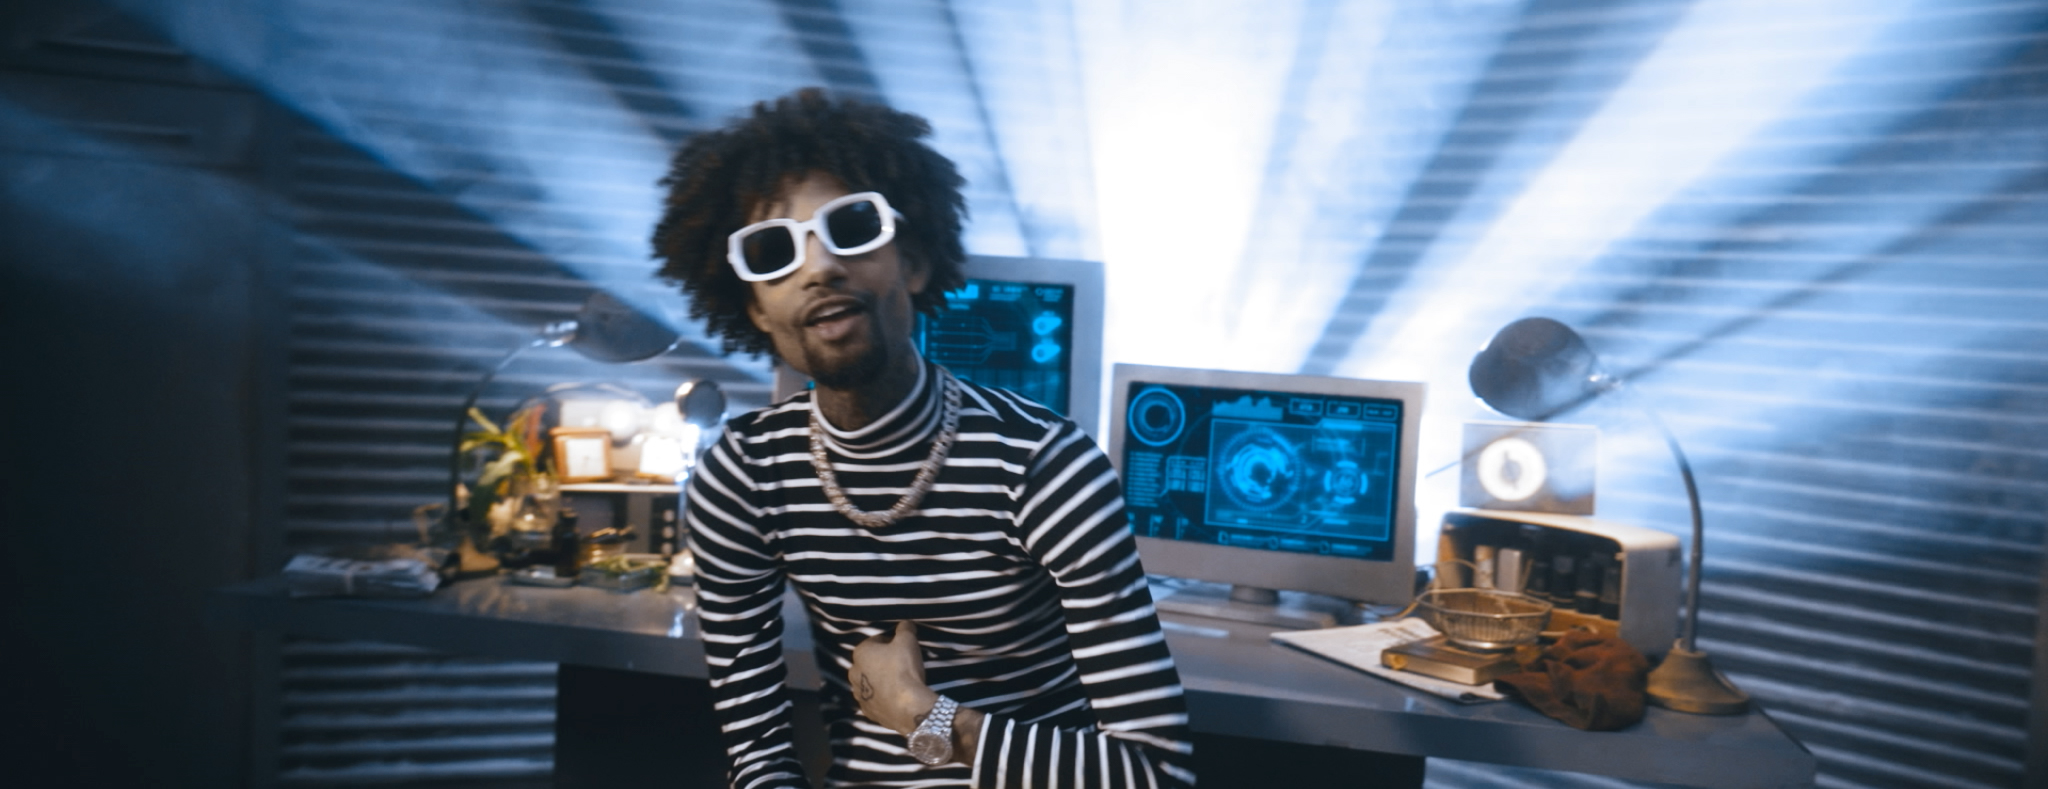 PNB ROCK FT. TEE GRIZZLEY - GO TO MARS (OFFICIAL VIDEO) - DIRECTED BY MAJIK FILMS.mov.00_00_34_09.Still034.jpg